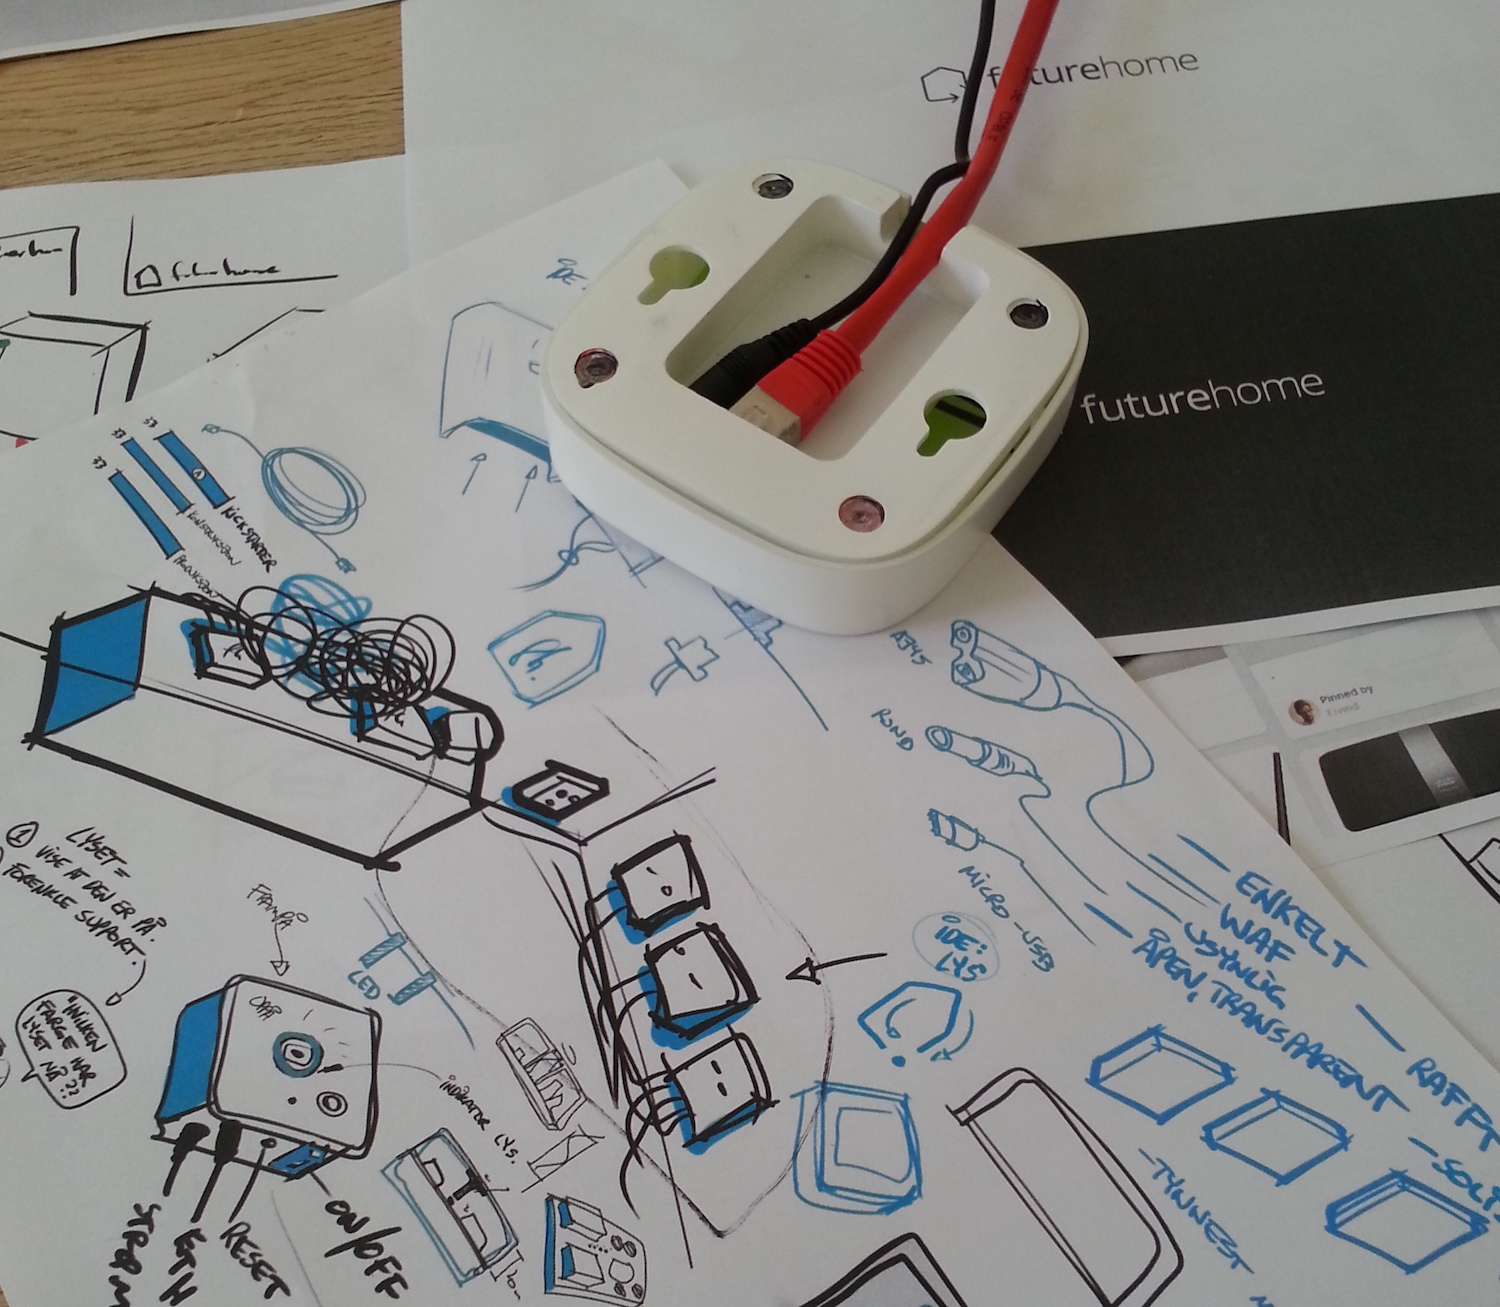 Future Home Self Powered Smart Indiegogo Structured Wiring Homepro S At A Glance We Are Currently Ready With Working Product And Have Spent The Last Year Testing It In Our Own Homes Selection Of Pilot Customers